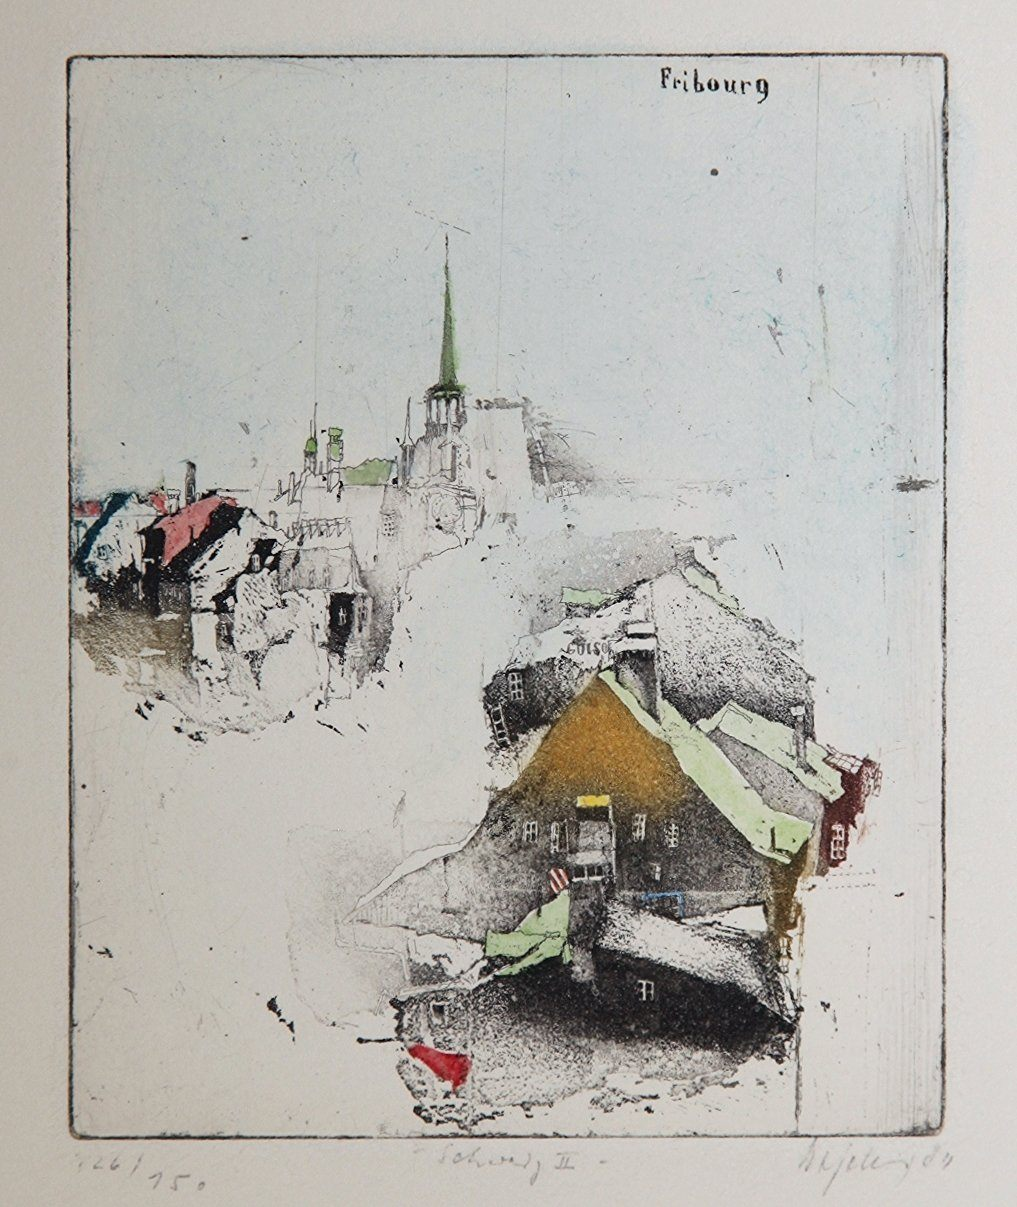 Fribourg, 1984 by Alexander Befelein, Print at Art Acacia Gallery & Advisory